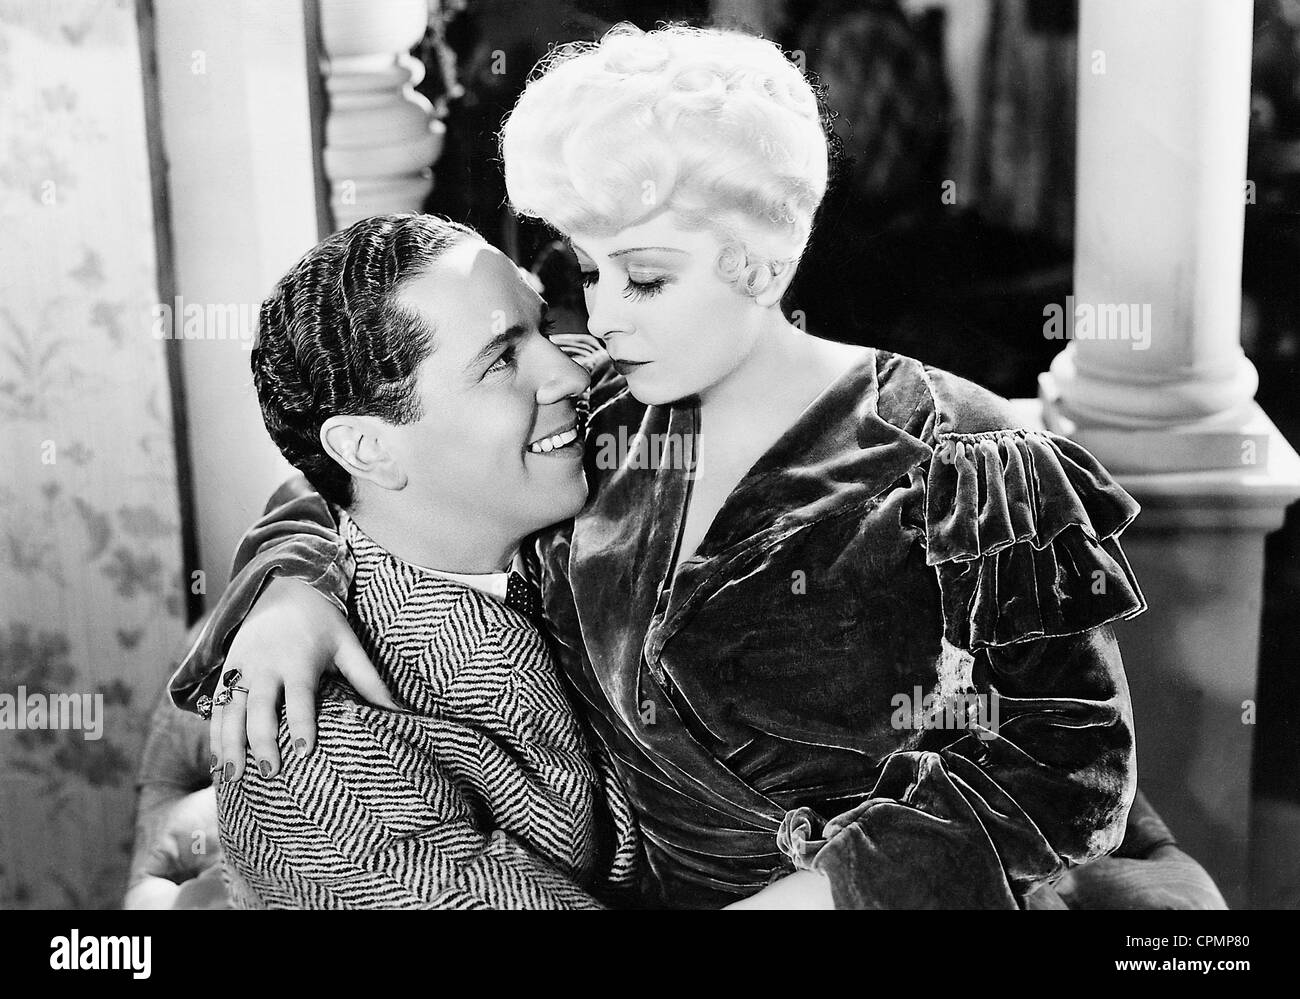 Roger Pryor and Mae West in 'It's not a sin', 1934 - Stock Image